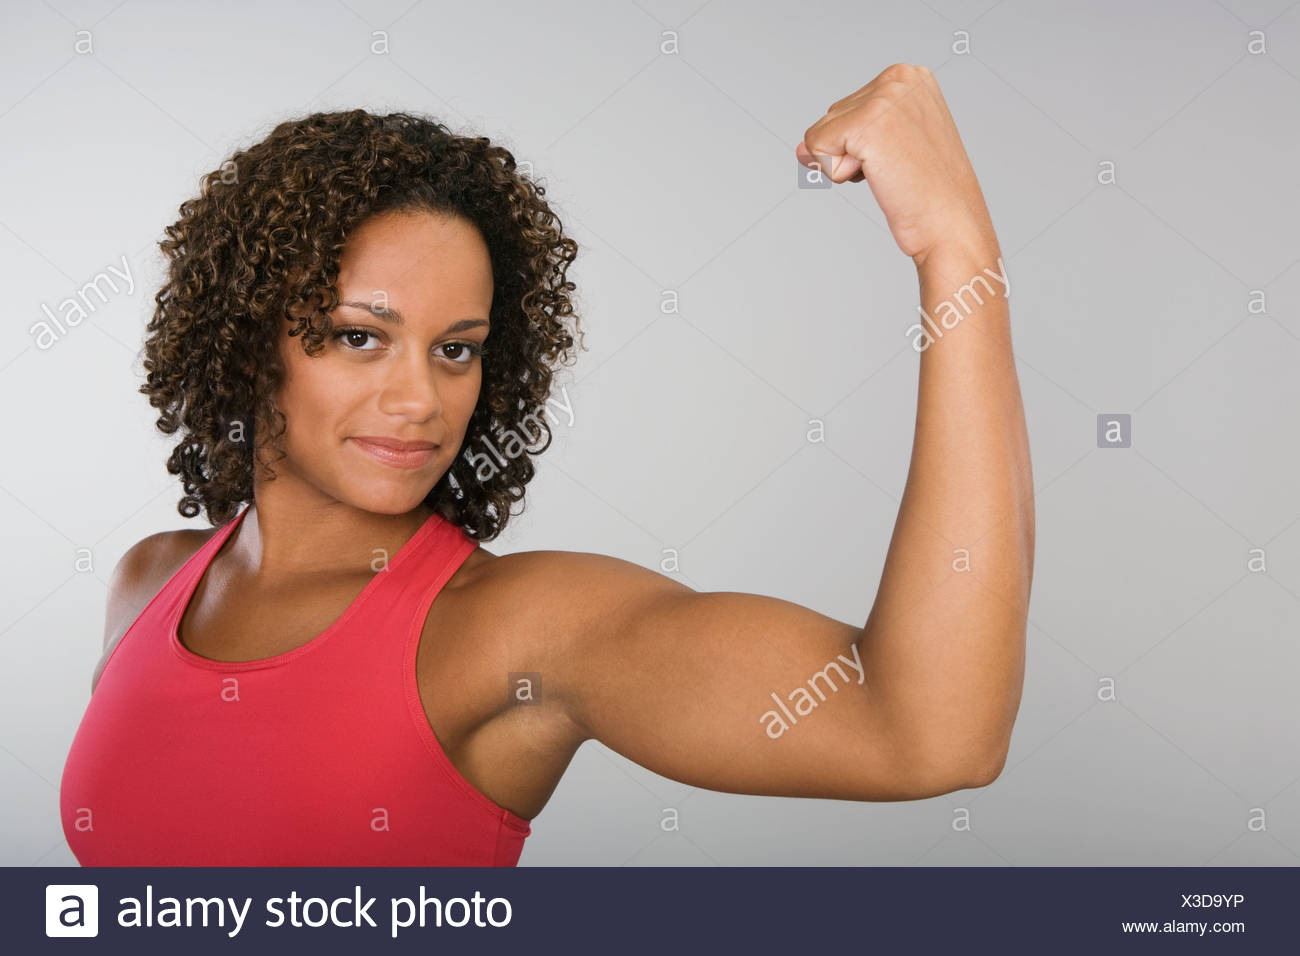 African woman flexing biceps - Stock Image